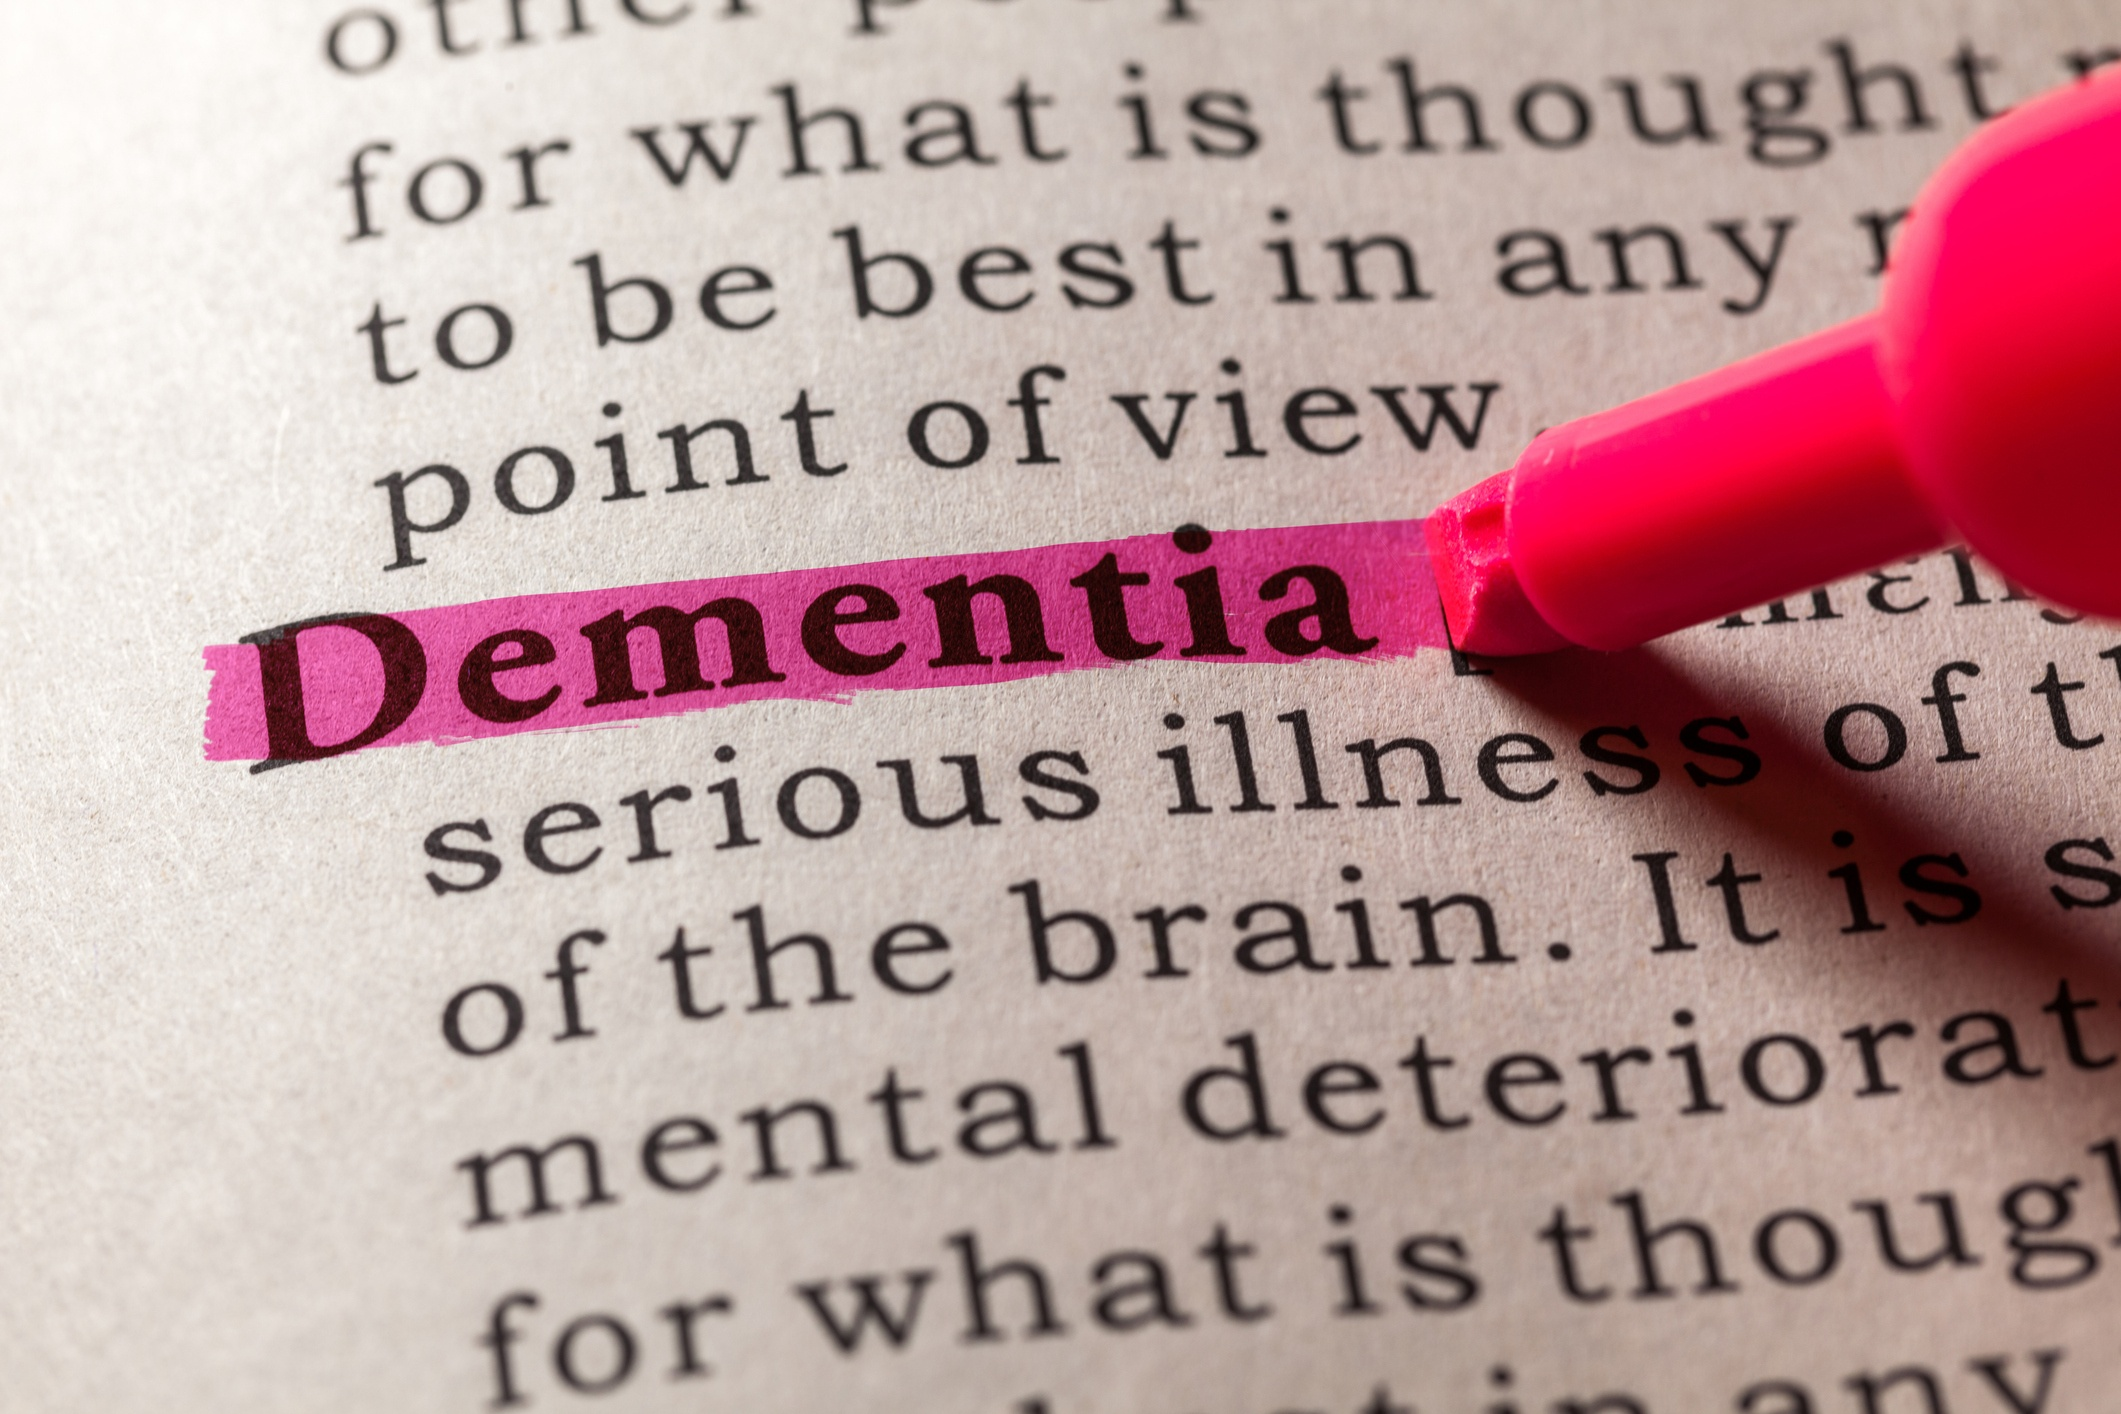 Dementia Symptoms: Memory Loss, Mood and Personality Changes, and Other Common Symptoms of Dementia